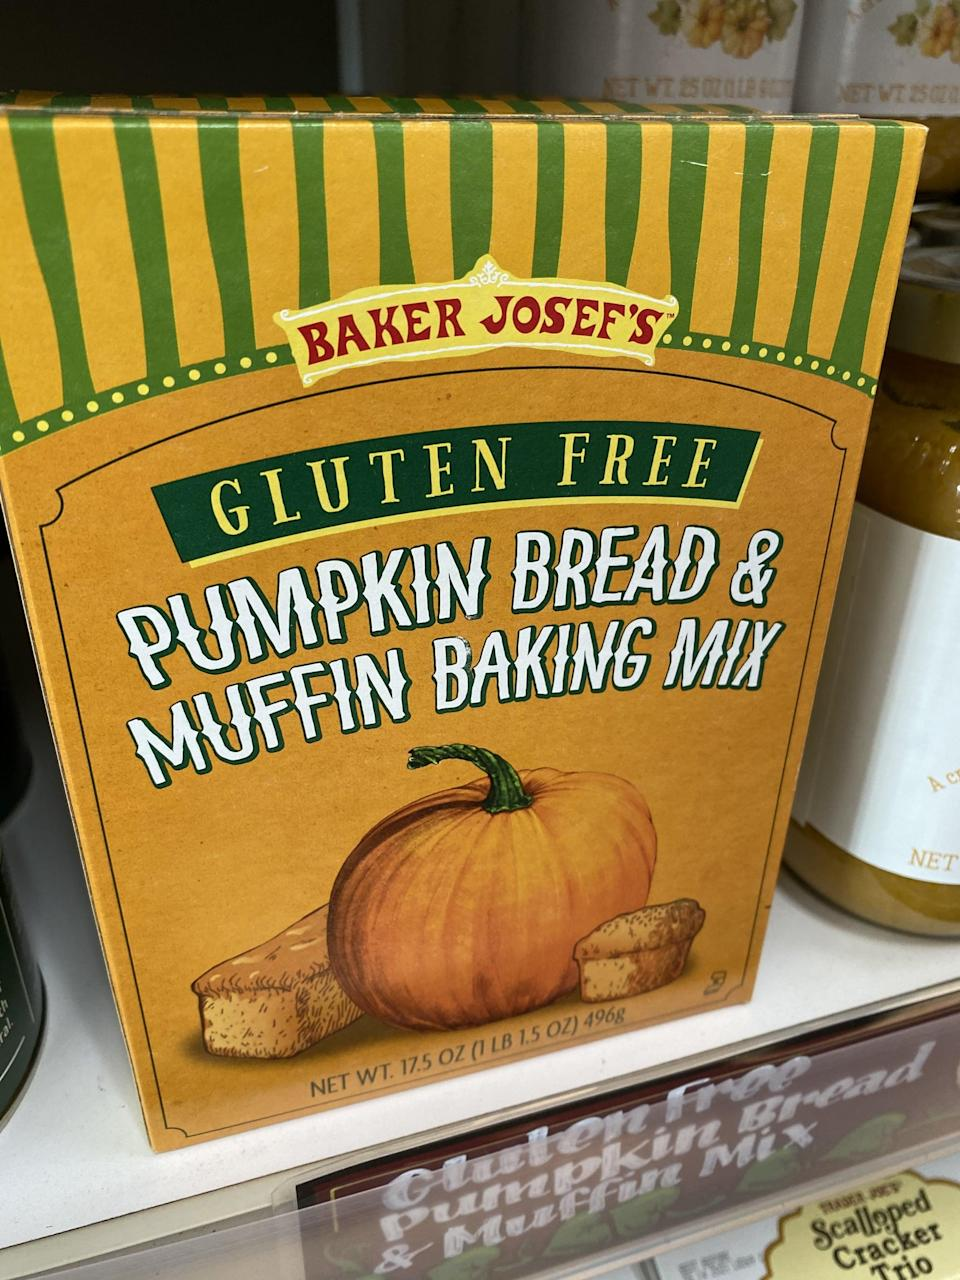 <p>This gluten-free baking mix makes it so easy to whip up a loaf of pumpkin bread or muffins.</p>